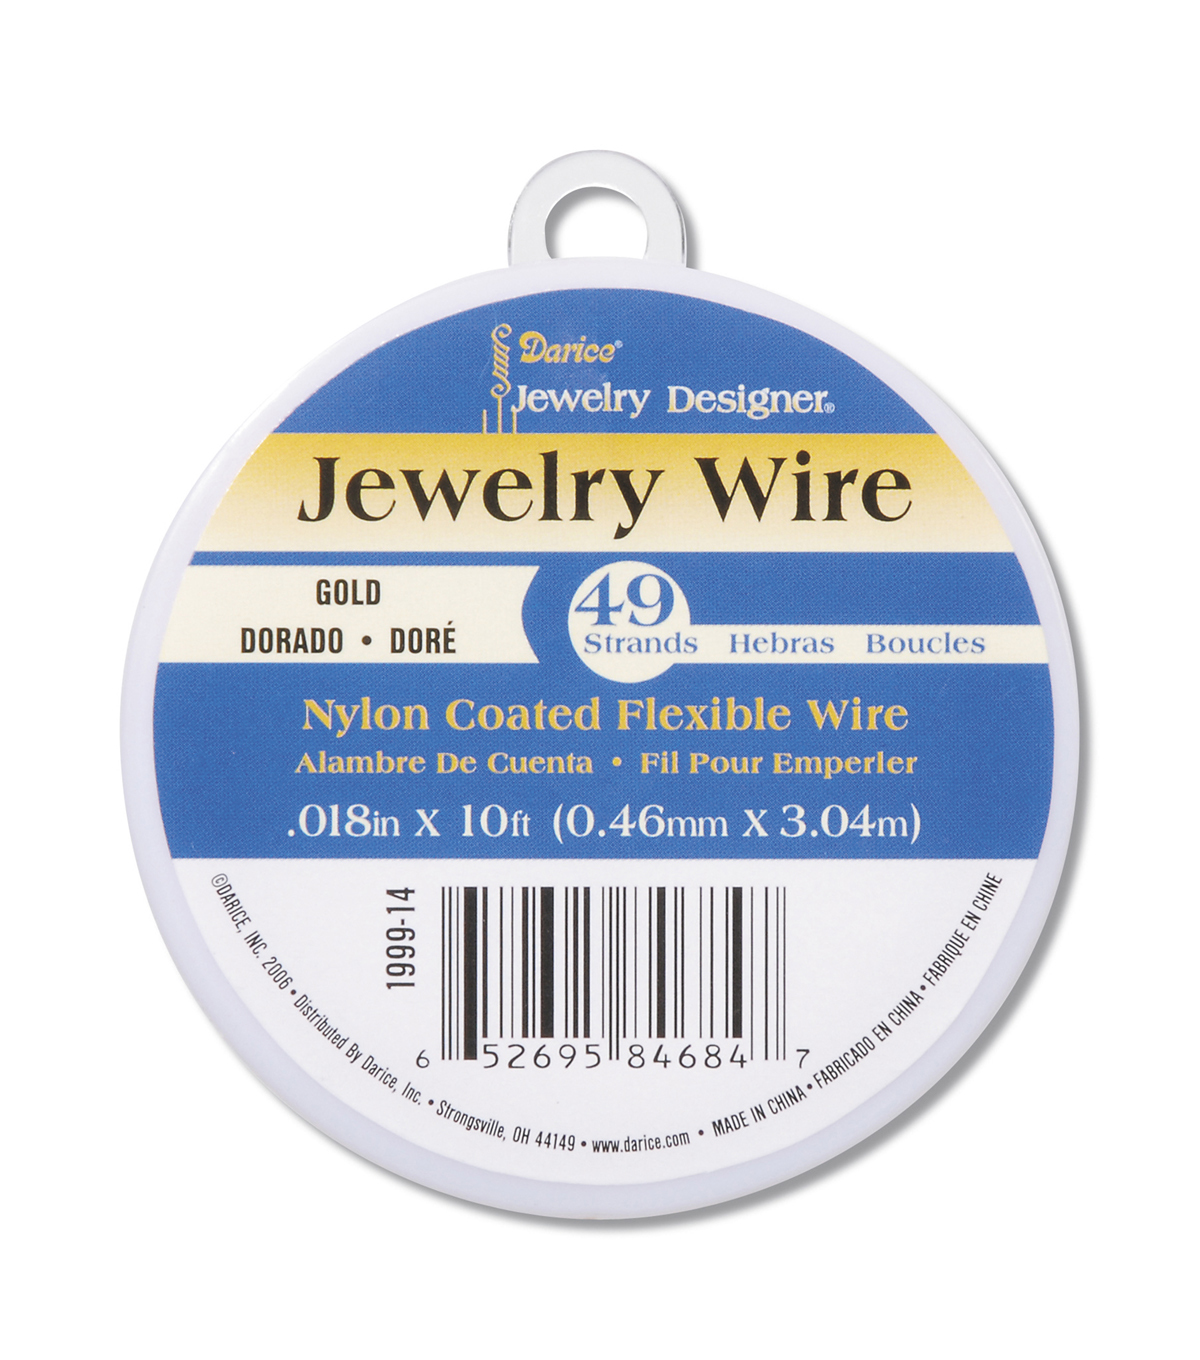 Gold Colored Nylon Coated Jewelry Wire, 49 strands, 10ft.